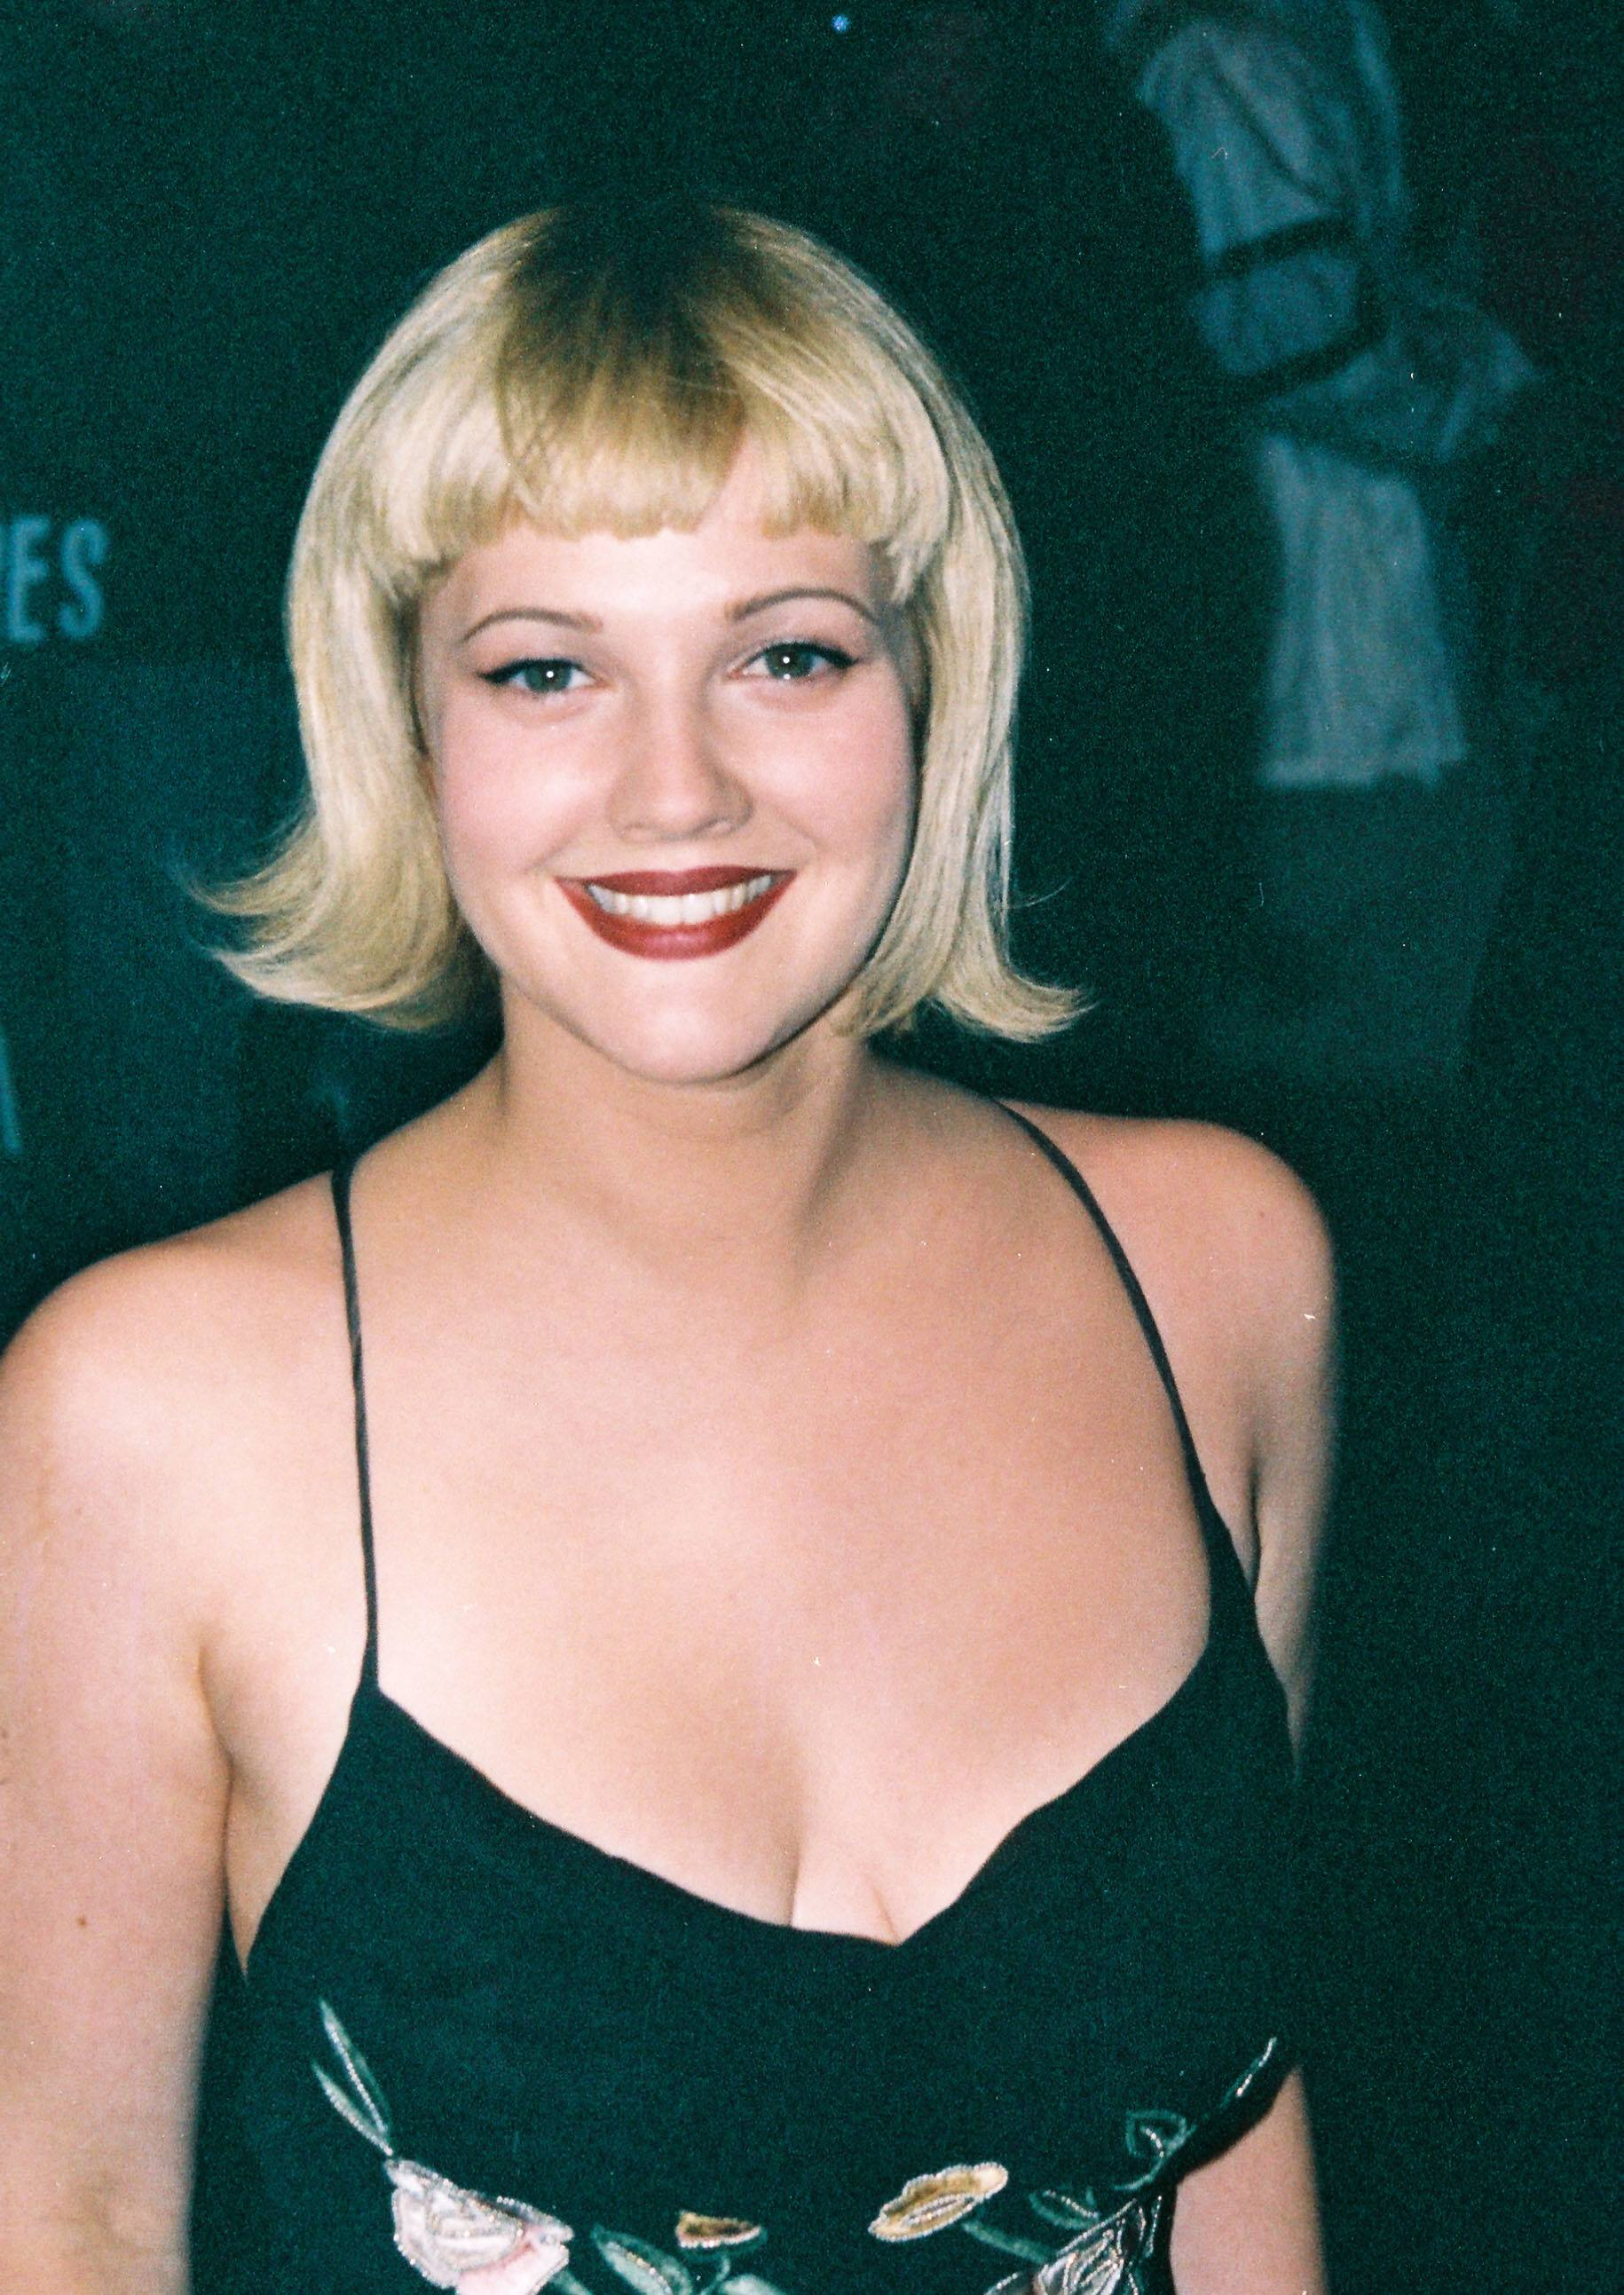 90s hairstyles: Drew Barrymore blonde bob with distinctive flipped out ends with micro fringe. Drew is wearing a black dress